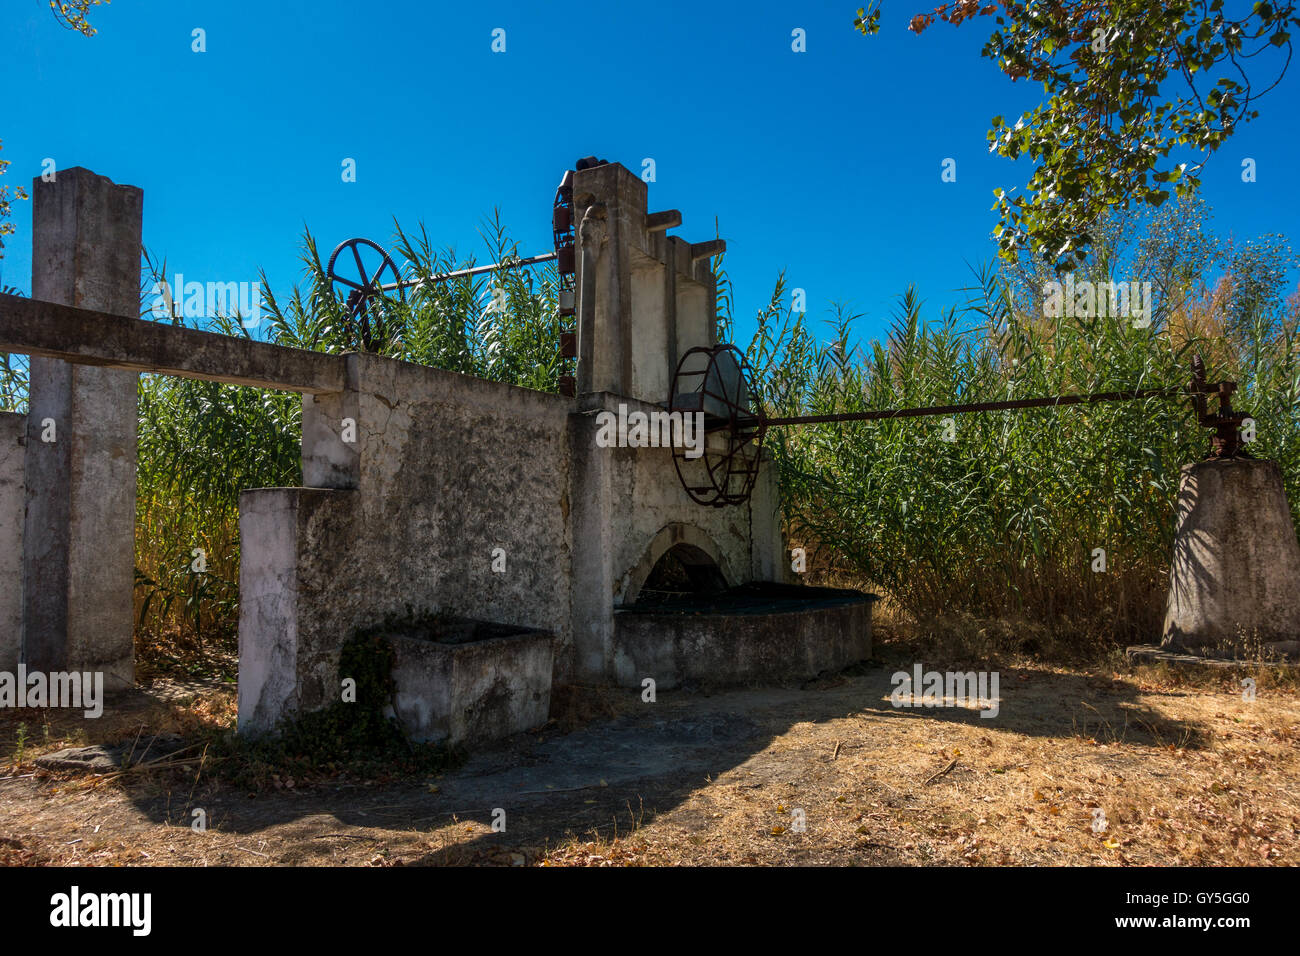 Old aqueduct for irrigation, Ria Formosa Natural Park, Olhao, Algarve, Portugal - Stock Image